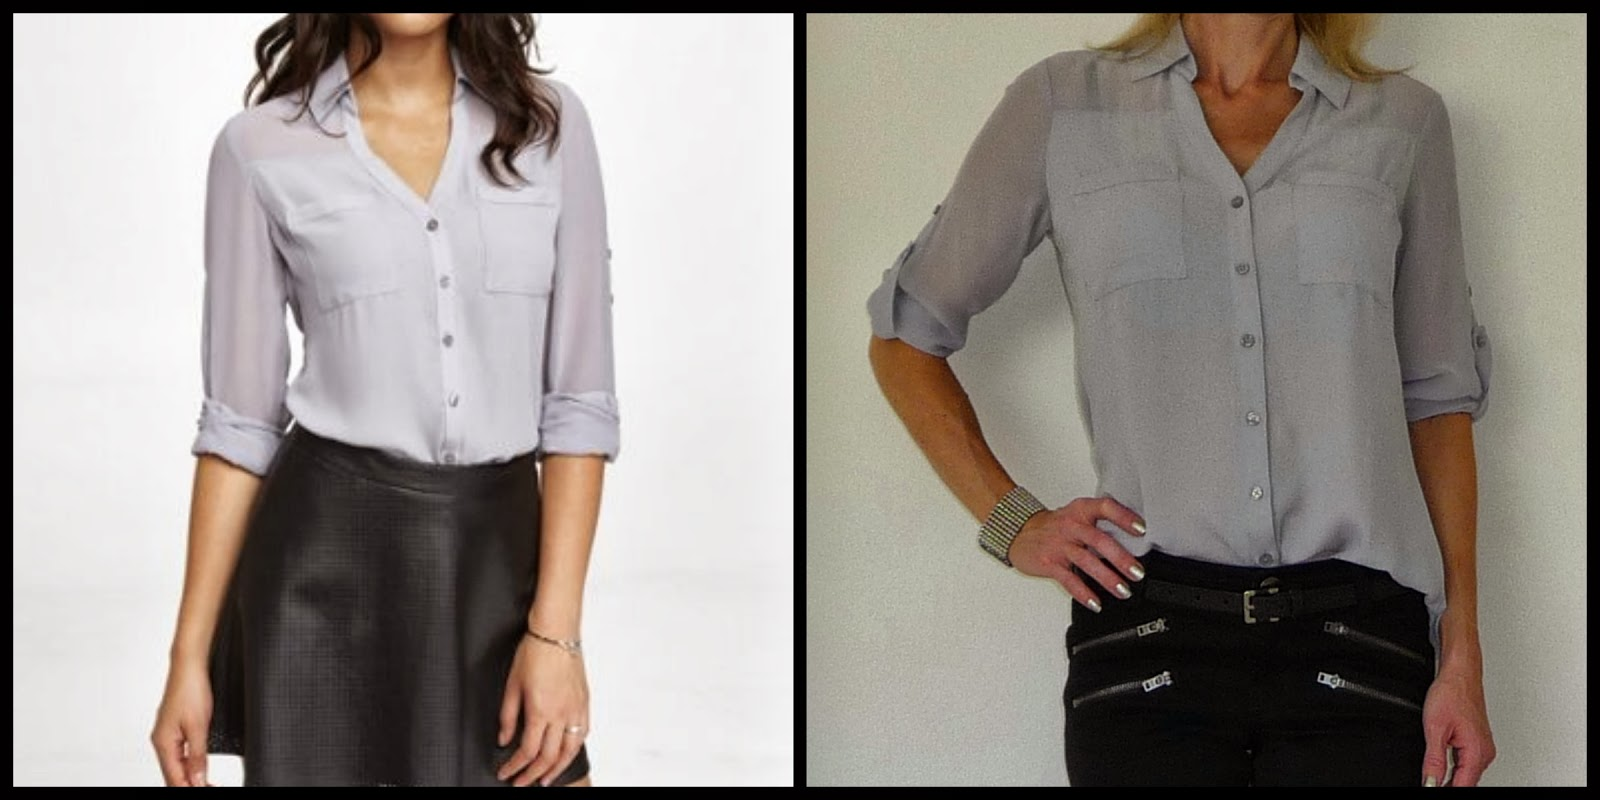 Express Portofino shirt, blouse, top, liquid gray, grey, lavender